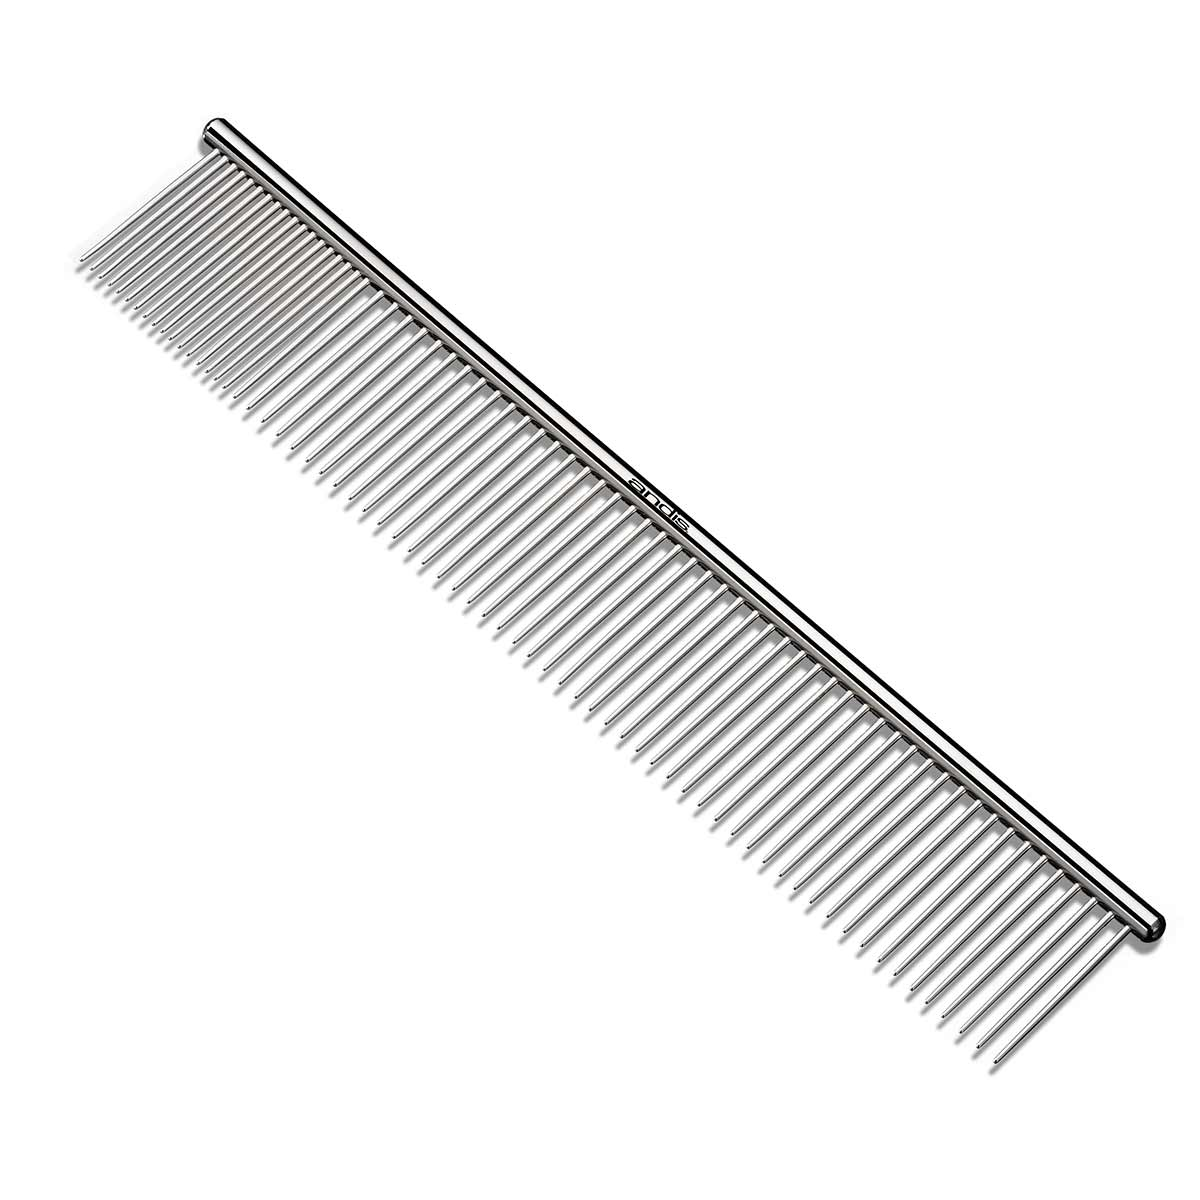 Andis 10 inch Steel Comb at Ryan's Pet Supplies